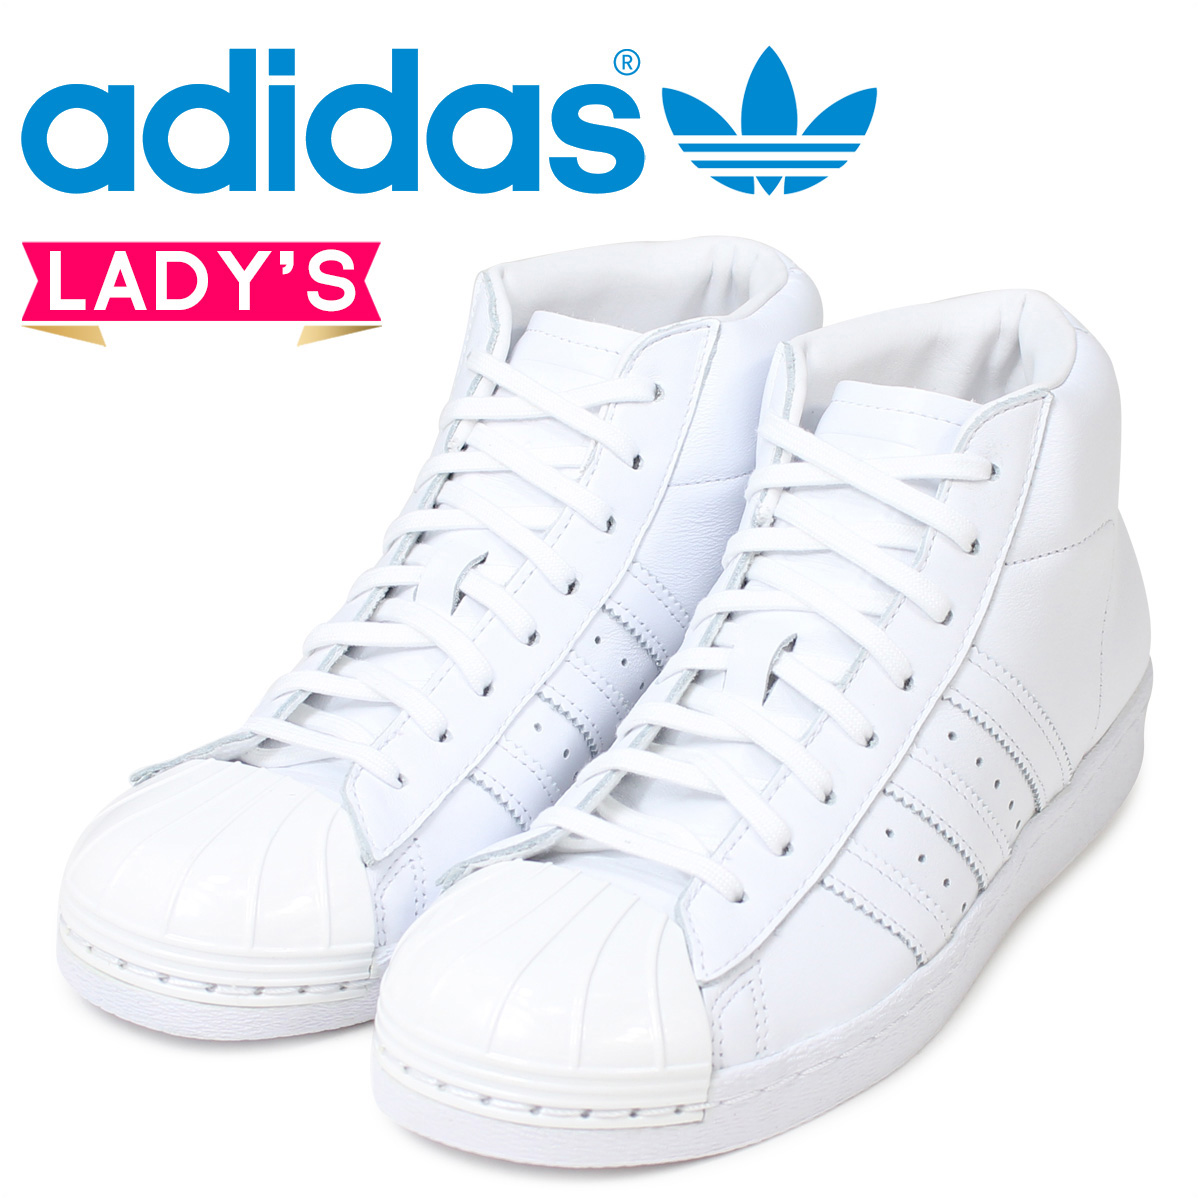 adidas Originals adidas original Pro model sneakers Womens PROMODEL W BB4945 shoes white